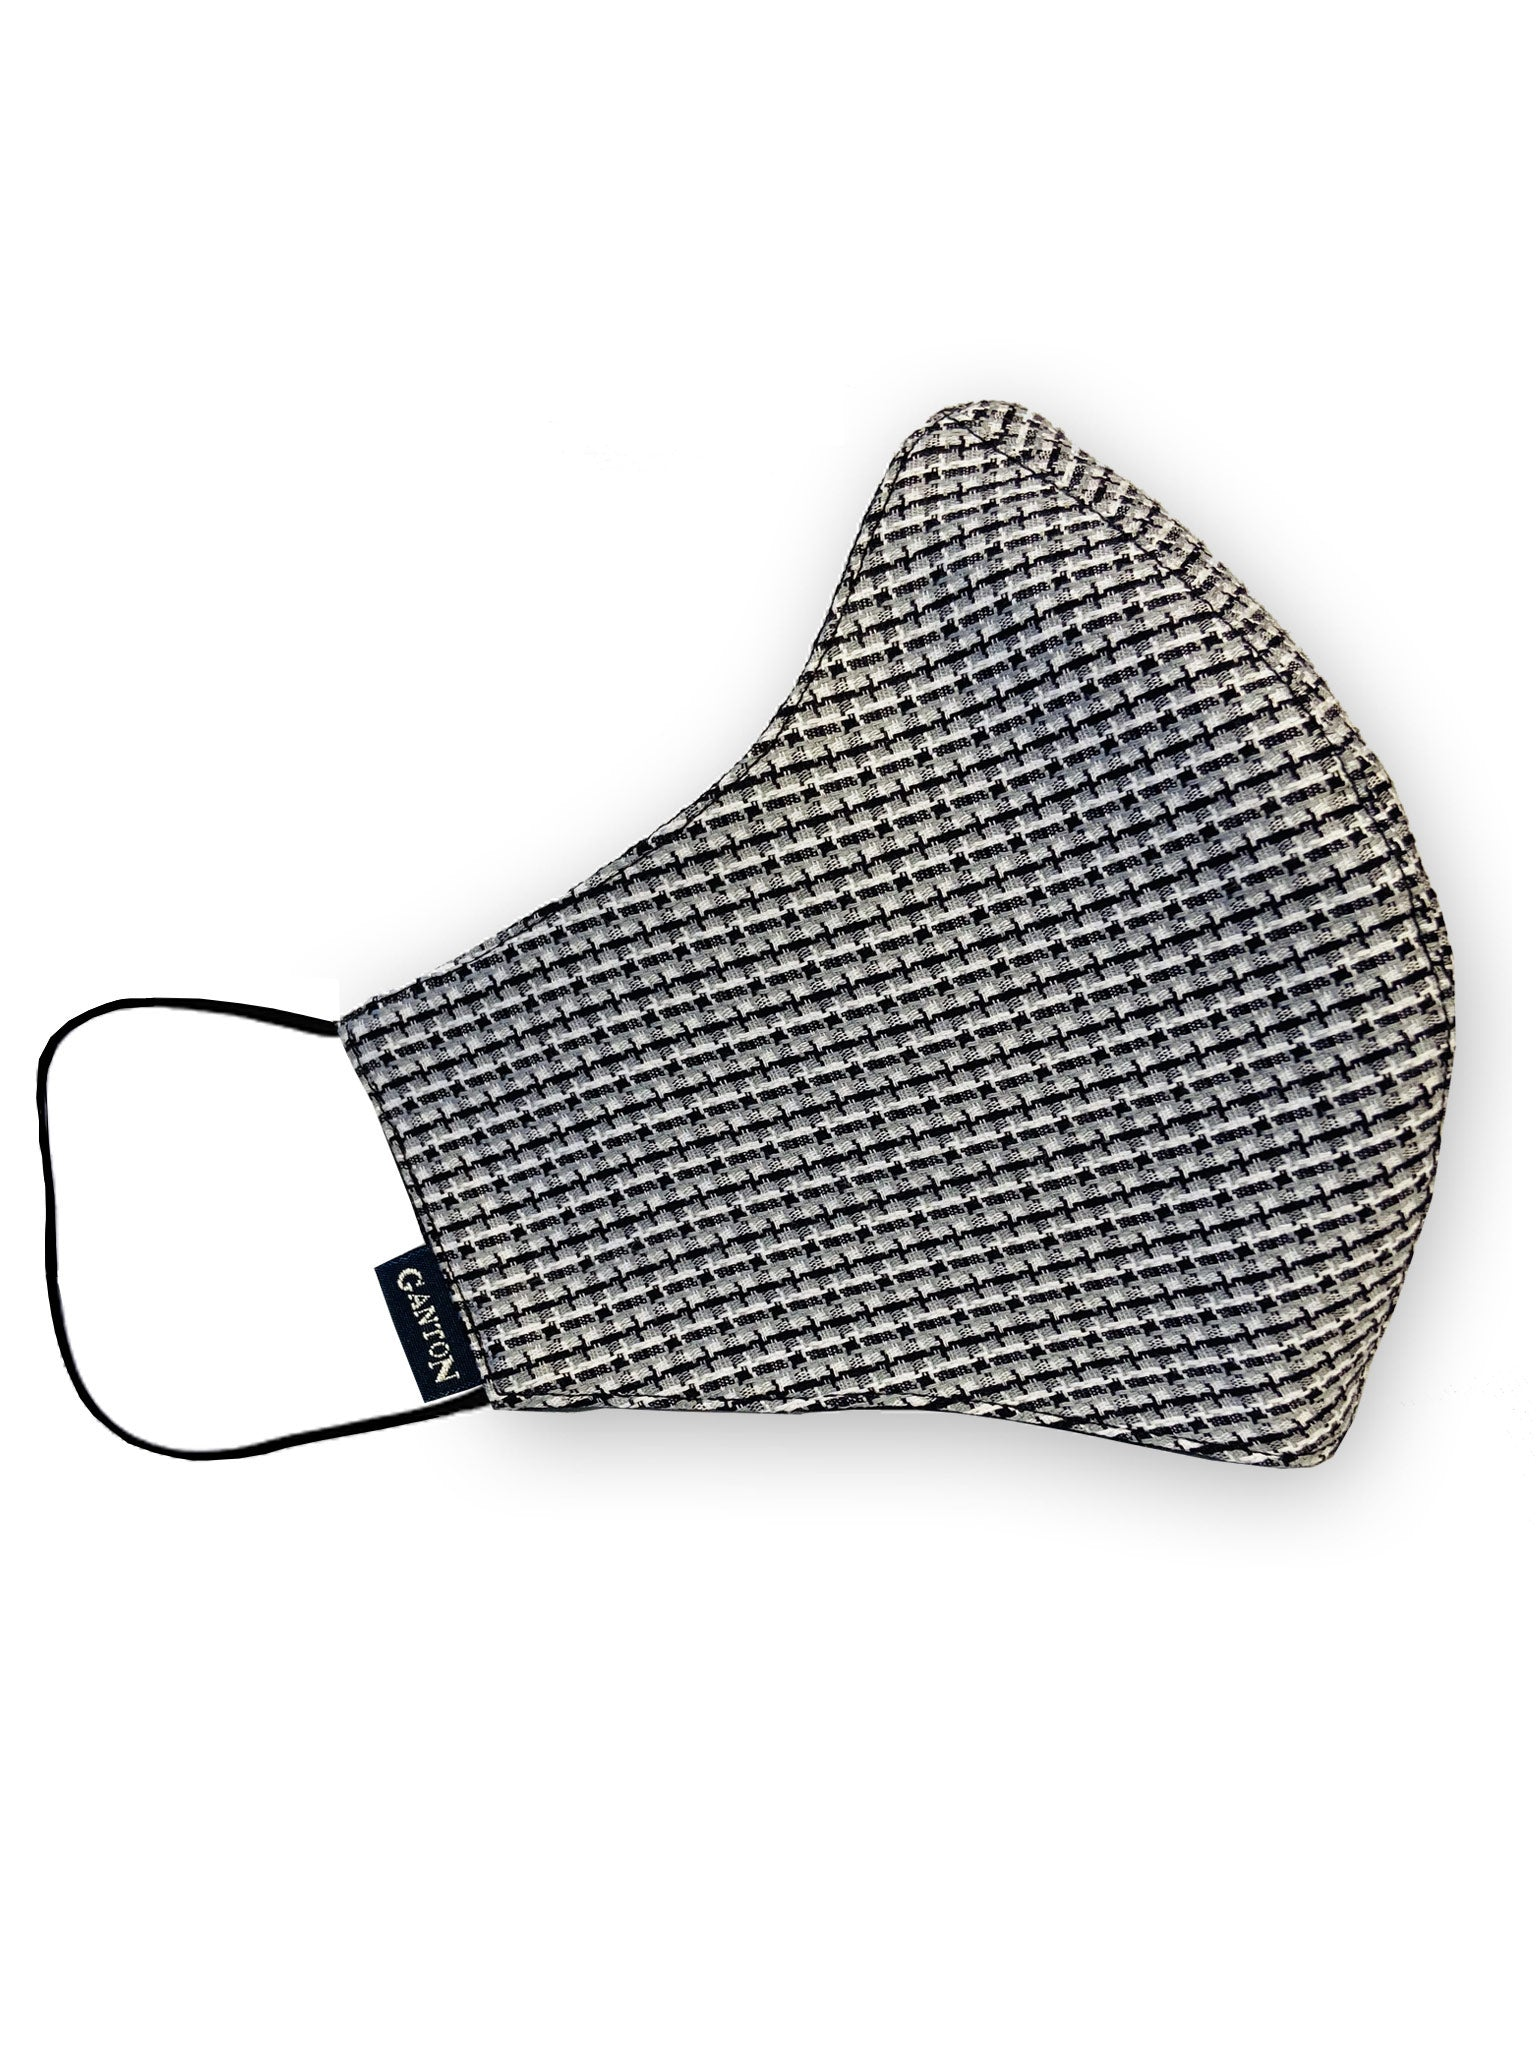 Grey / Black Reversable Four Layer Protective Face Mask